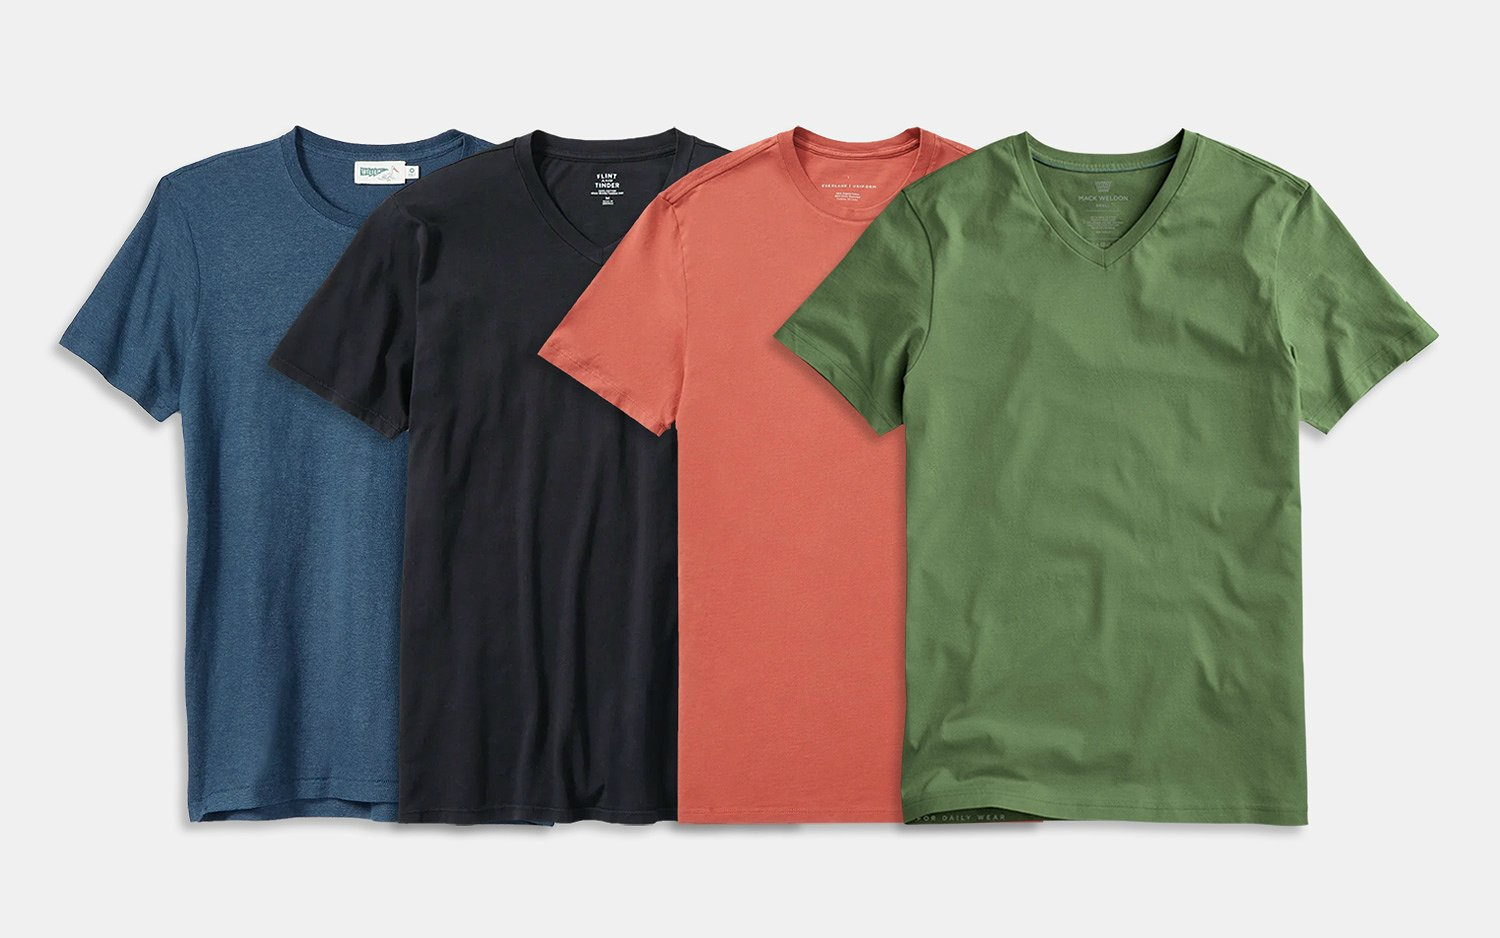 Best T-Shirt Brands For Men